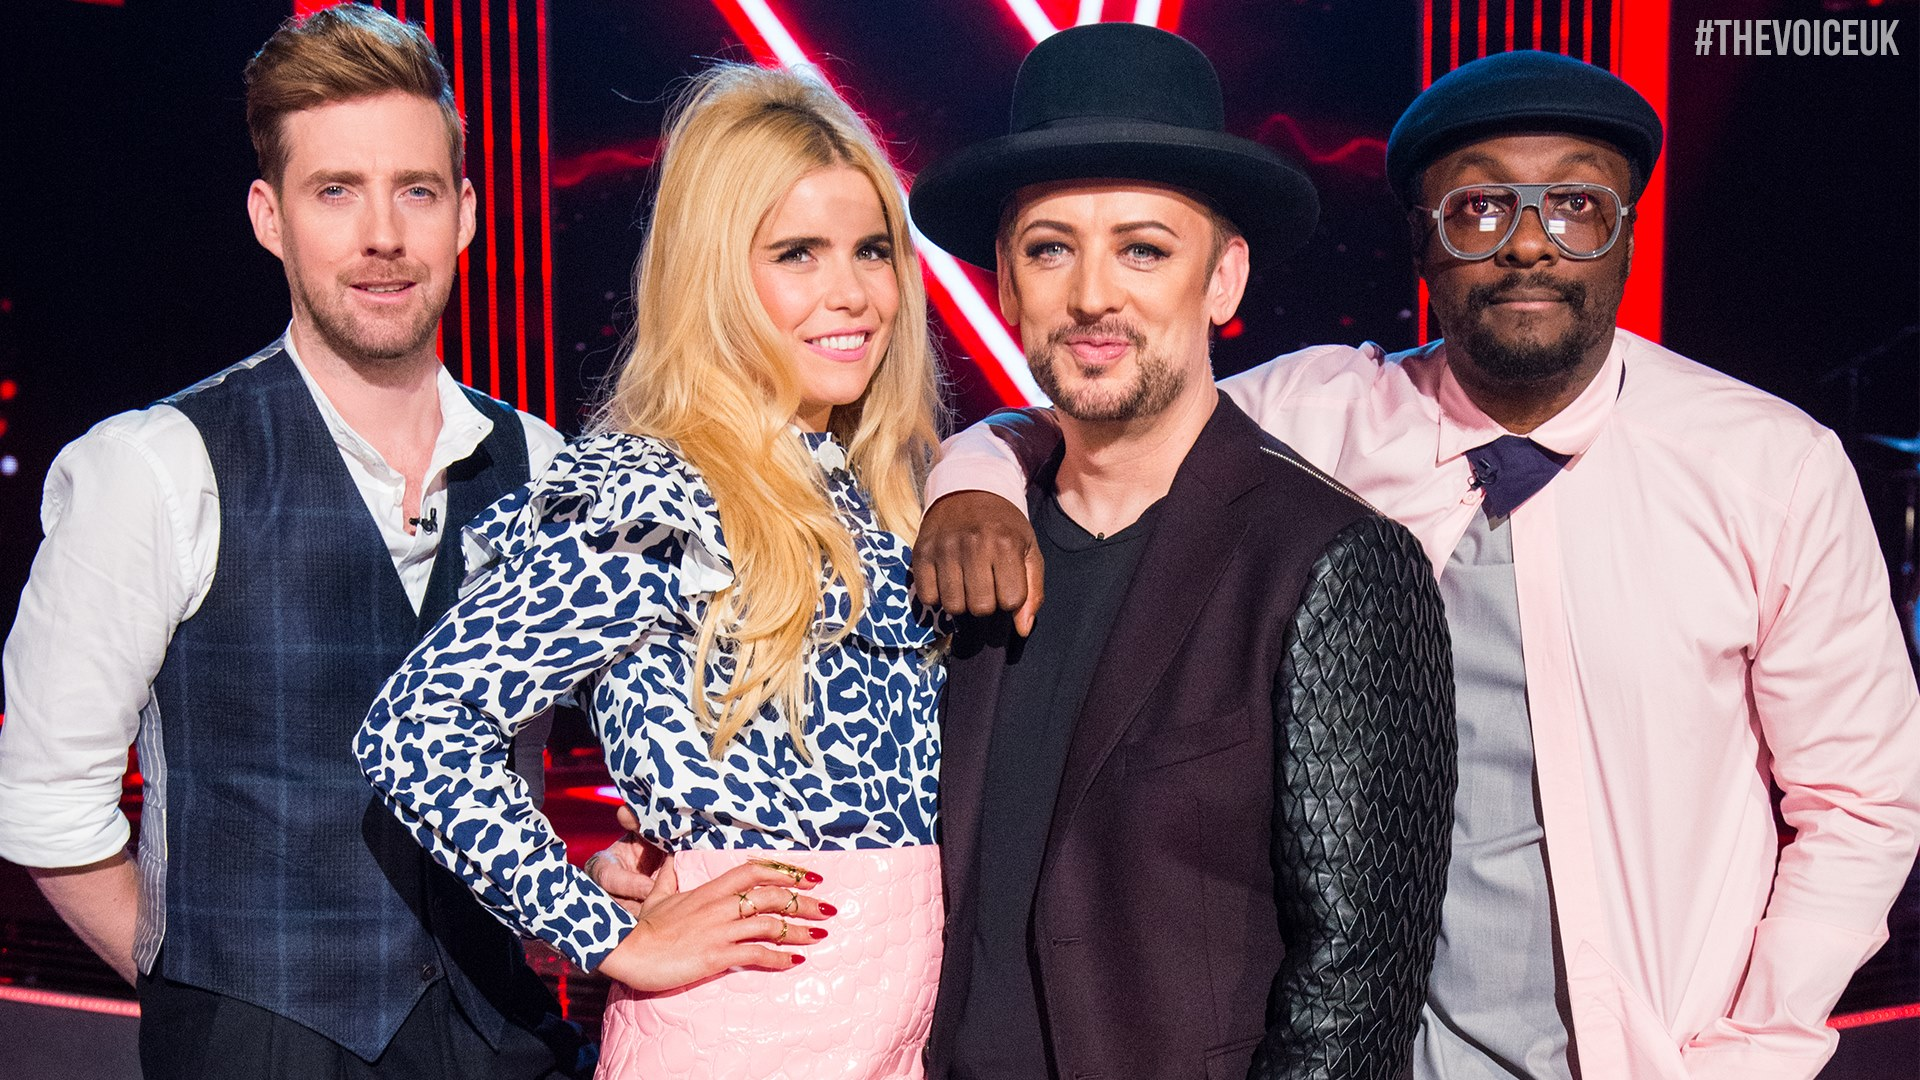 who have been judges on the voice